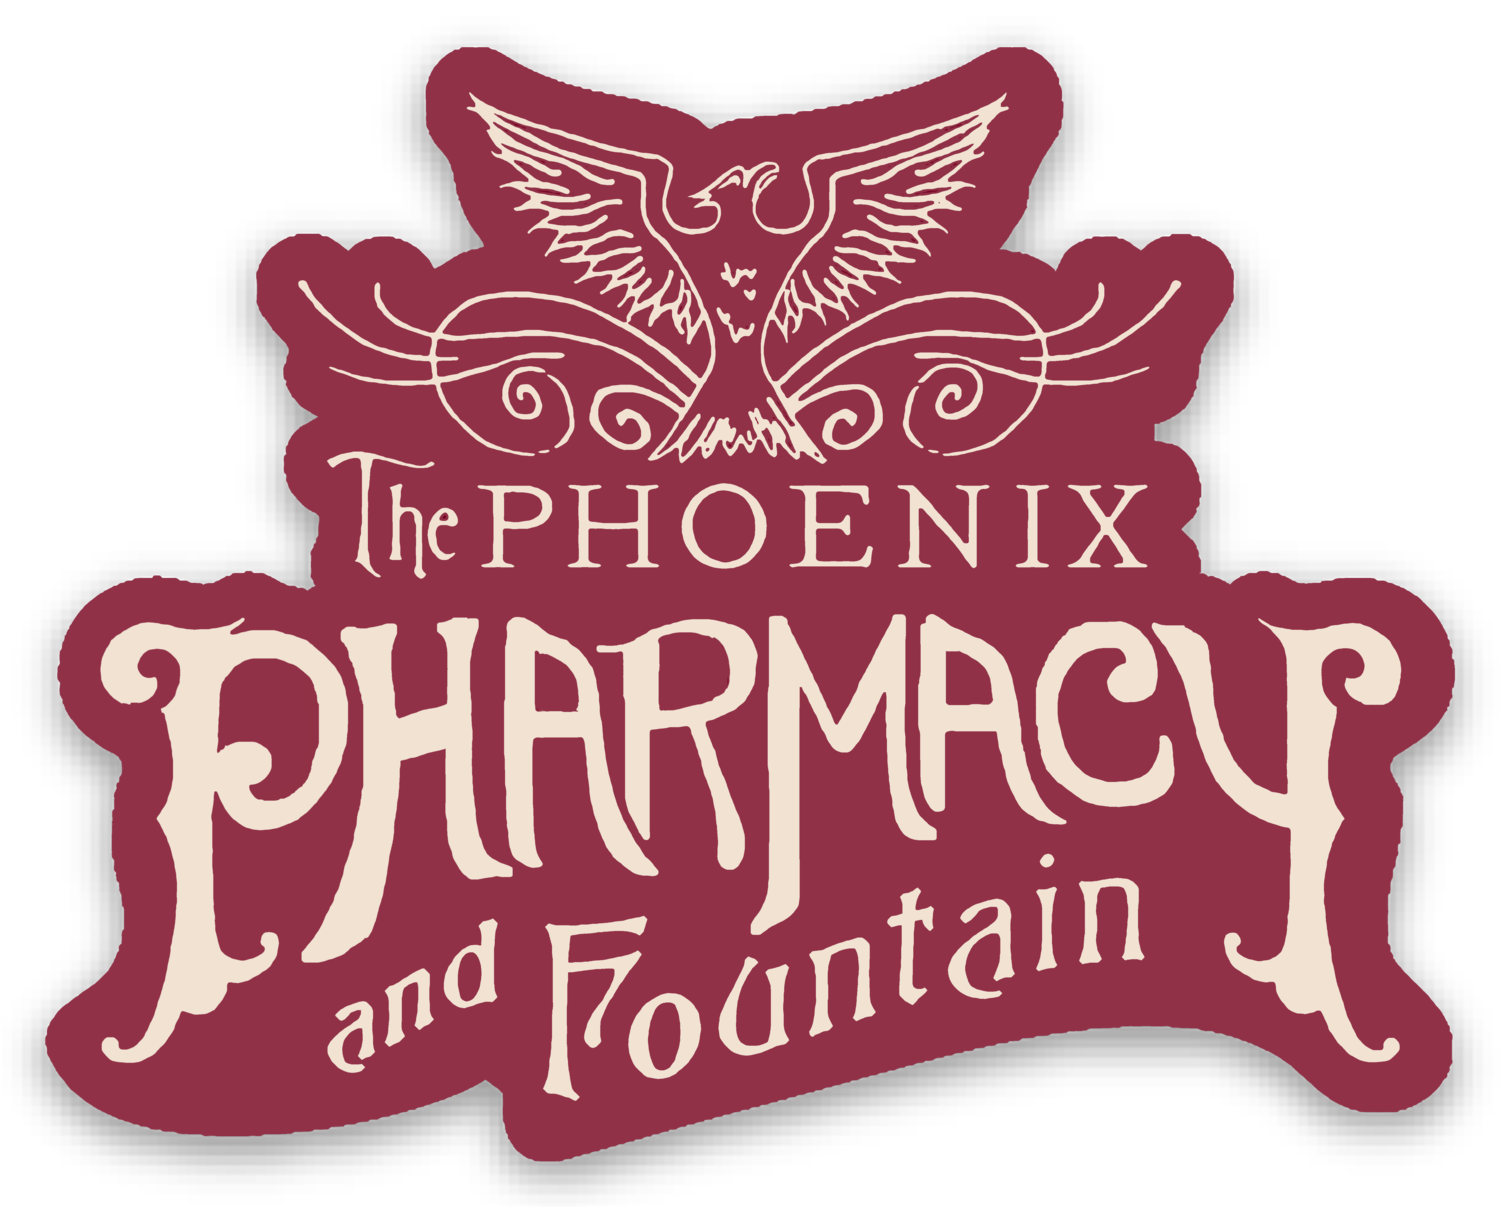 The Phoenix Pharmacy & Fountain